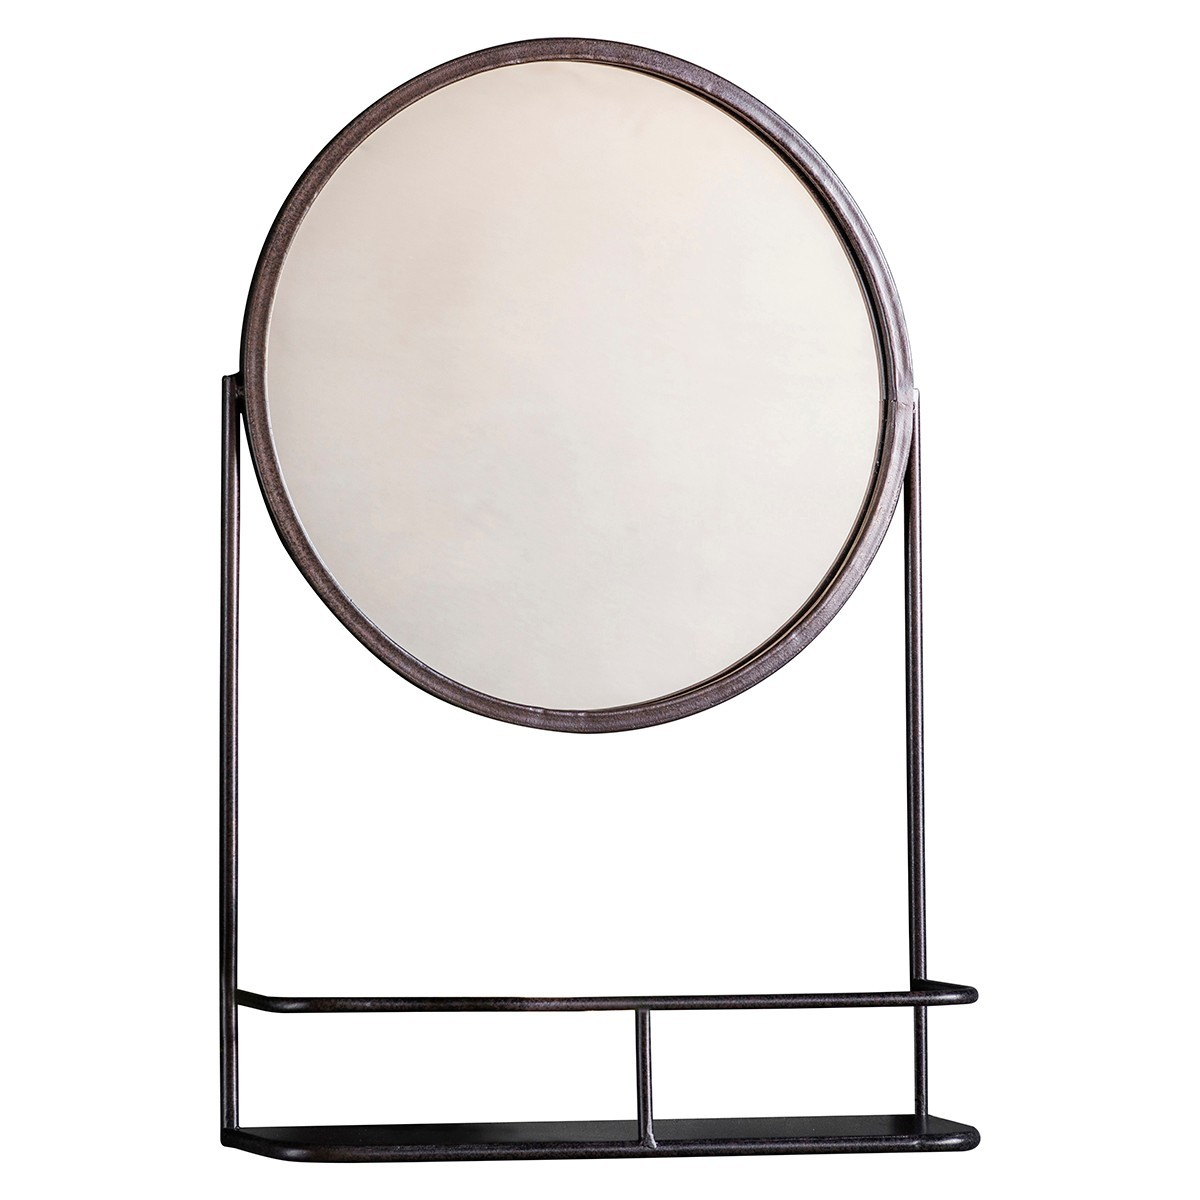 Eve Iron Frame Wall Mirror, Round, 63cm